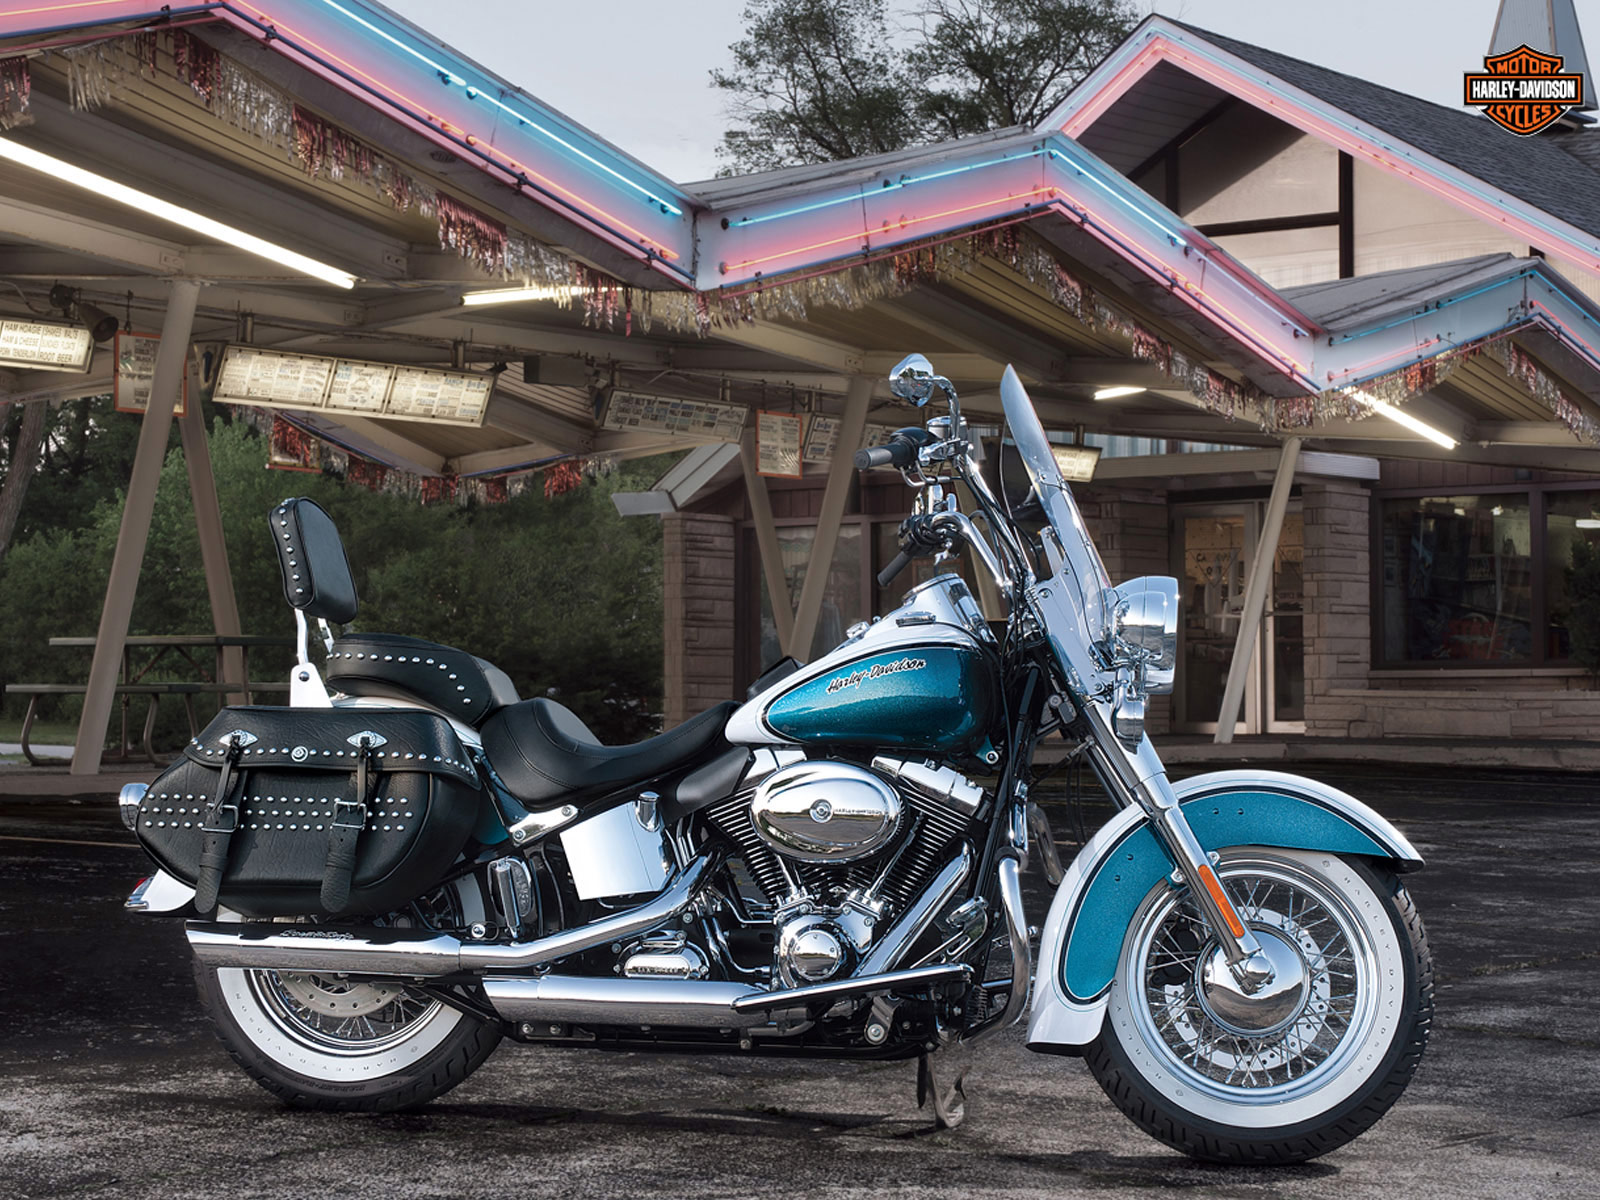 Harley Davidson Pictures . 2013 FLSTC Heritage Softail Classic ...